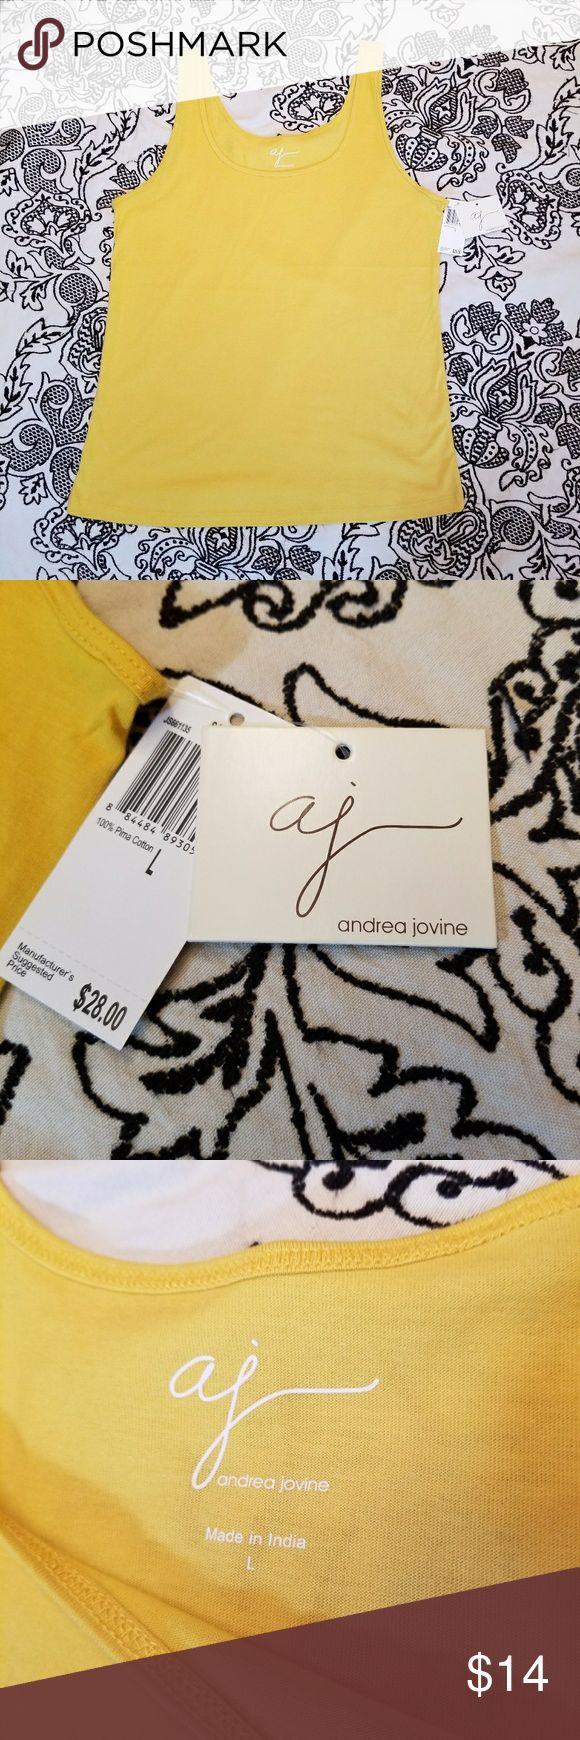 Women's large Andrea Jovine yellow tank top Women's large Andrea Jovine yellow tank top. 100 percent Pima cotton. Item is new with tags. Yellow tank top cami, great for layering. Andrea Jovine Tops Tank Tops